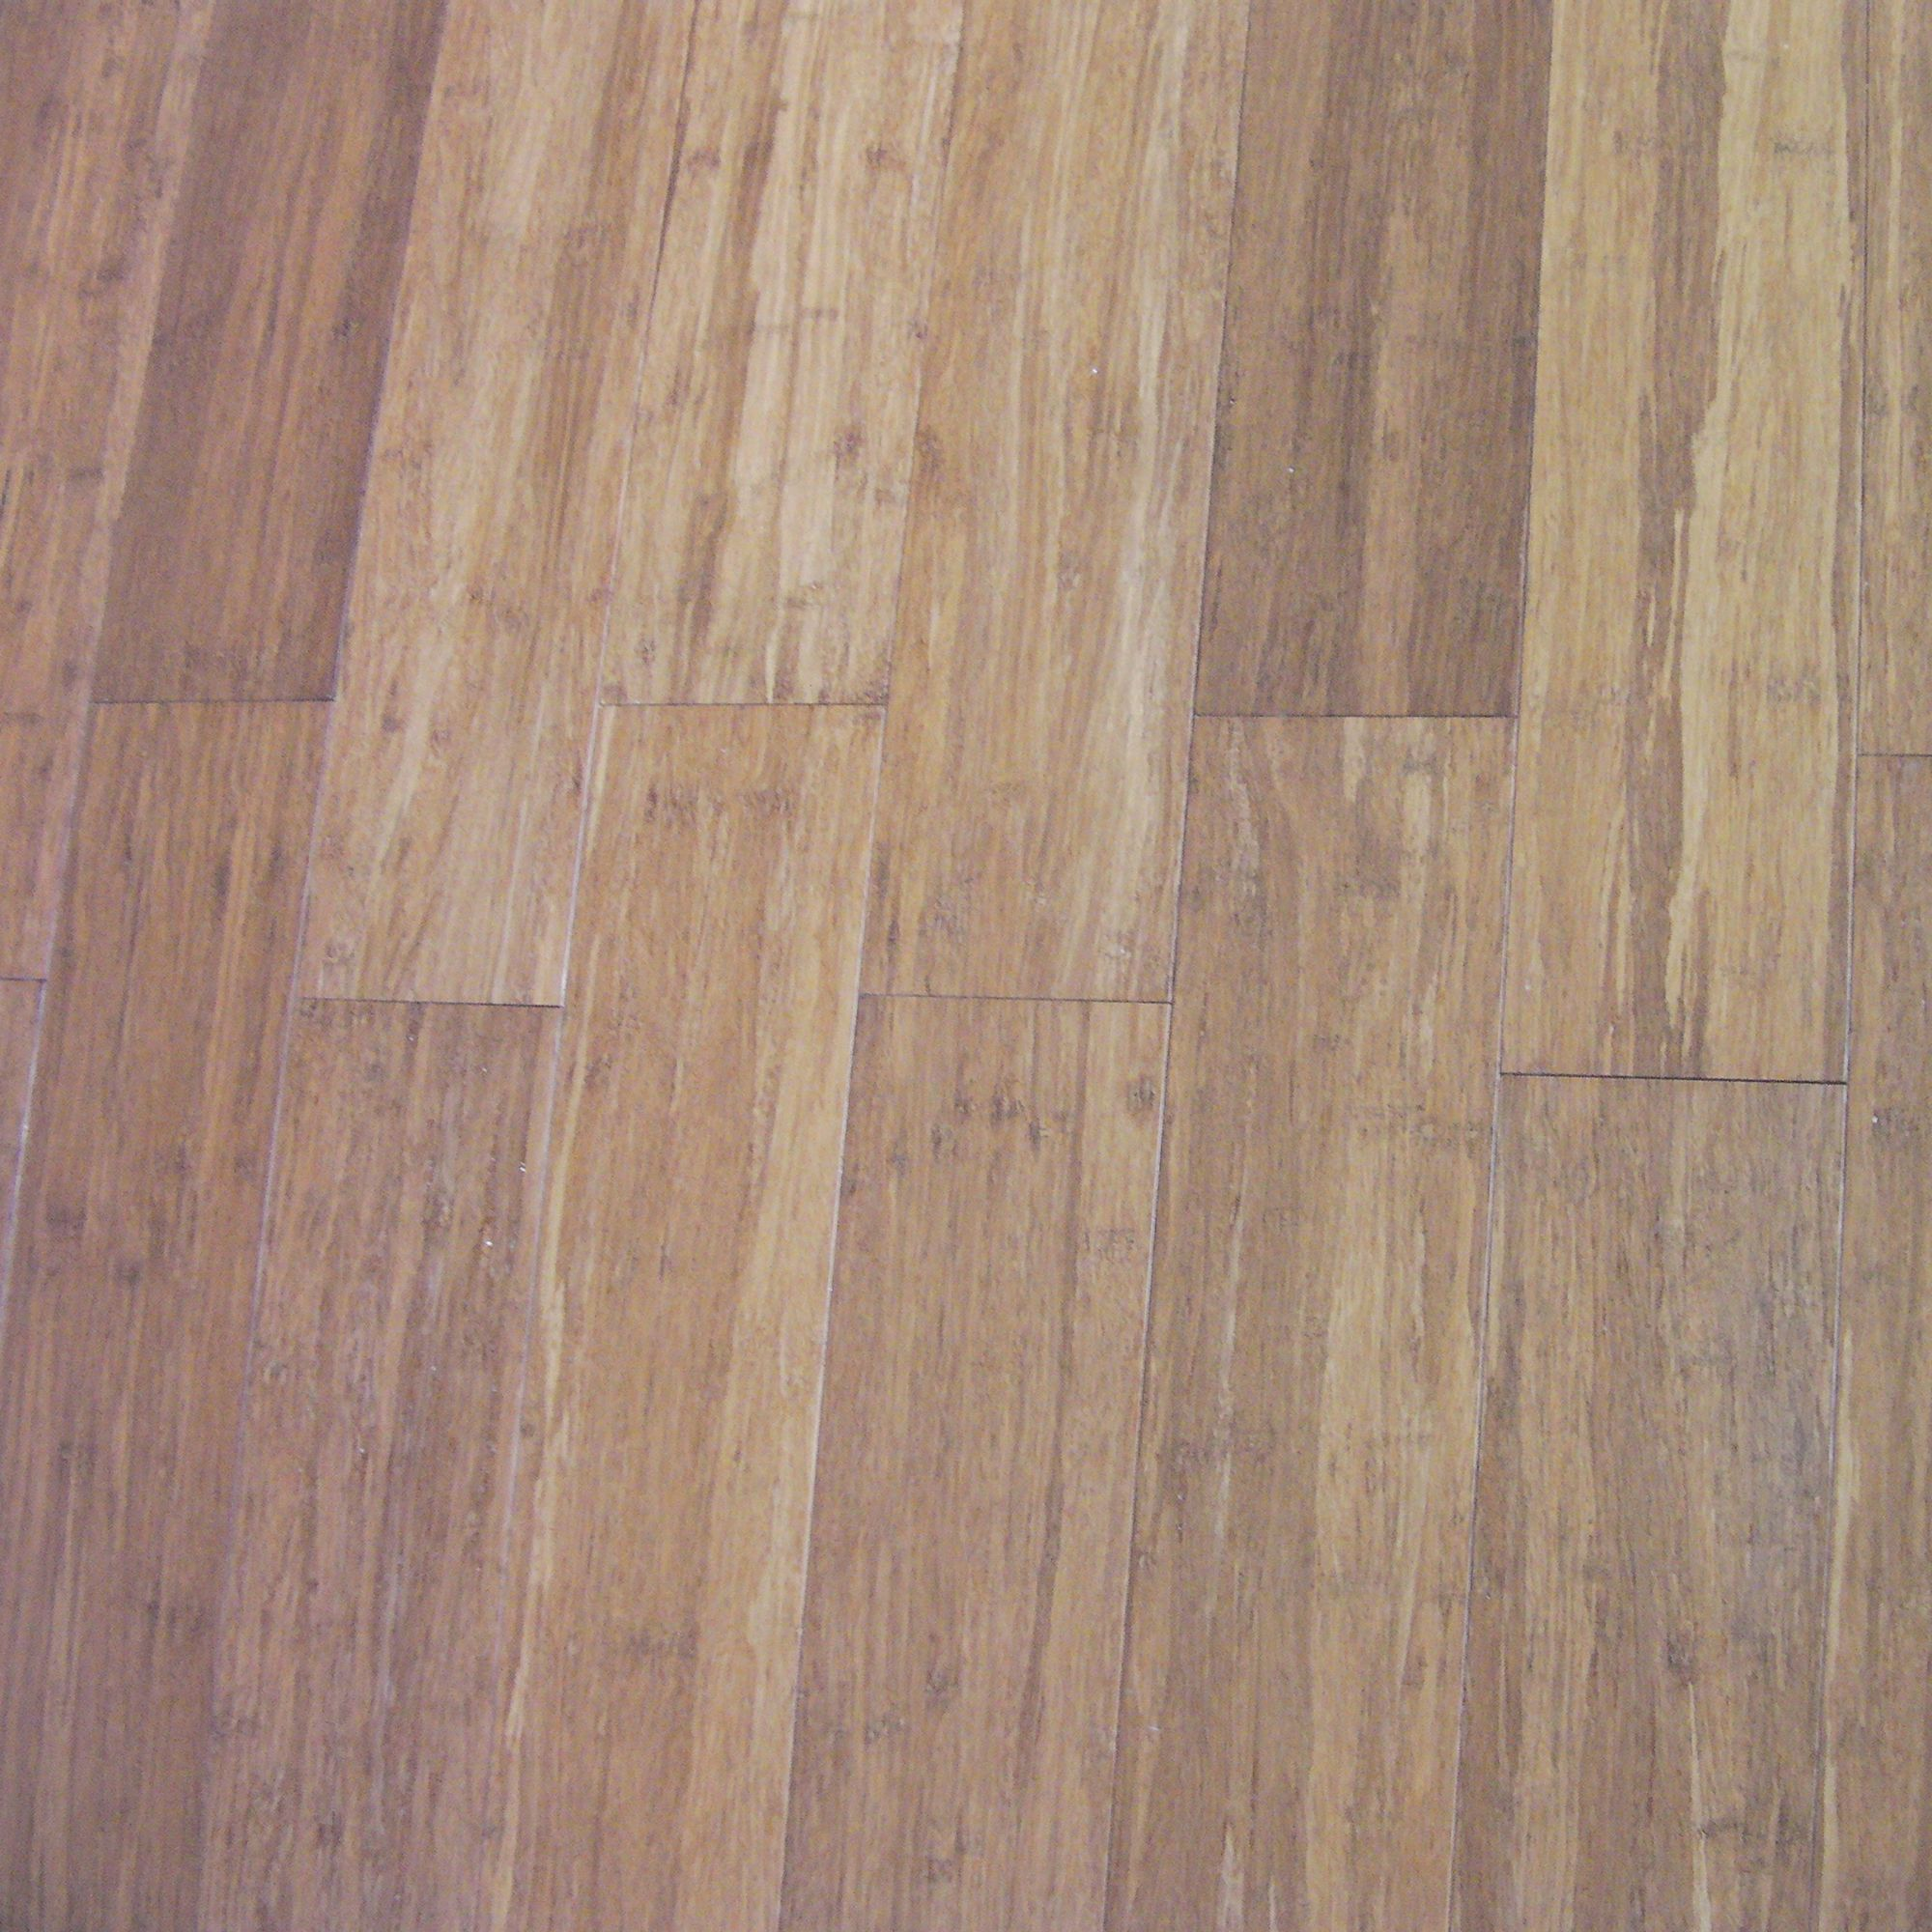 Colours Pandero Smoked Rustic Effect Bamboo Strand Woven Flooring 1.684m  Pack | Departments | DIY at B&Q